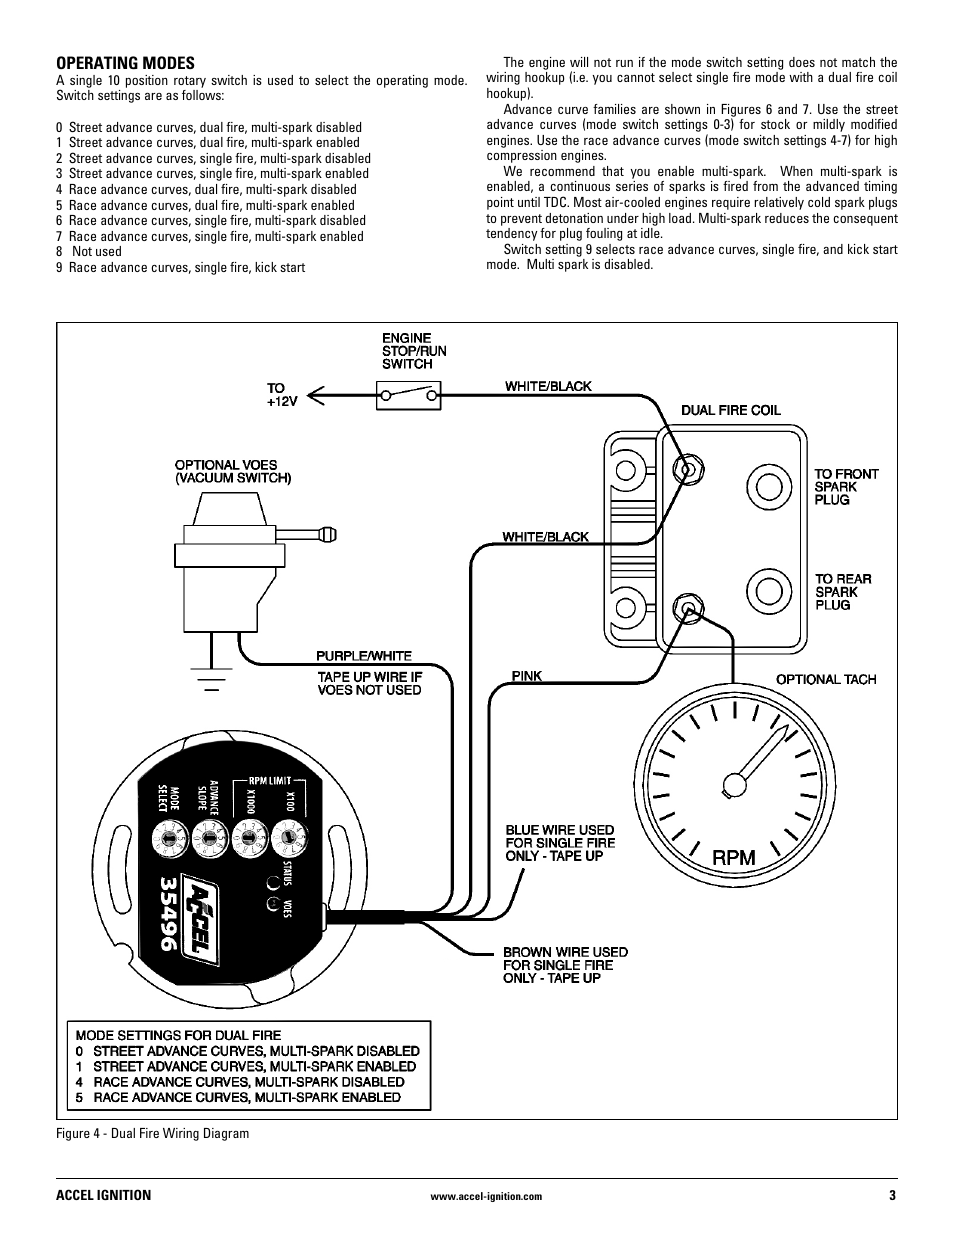 Mallory Ignition Accel Ignition 35496 User Manual Page 3 8 Chevy 350 Ignition  Wiring Diagram Accel Distributor Wiring Diagram